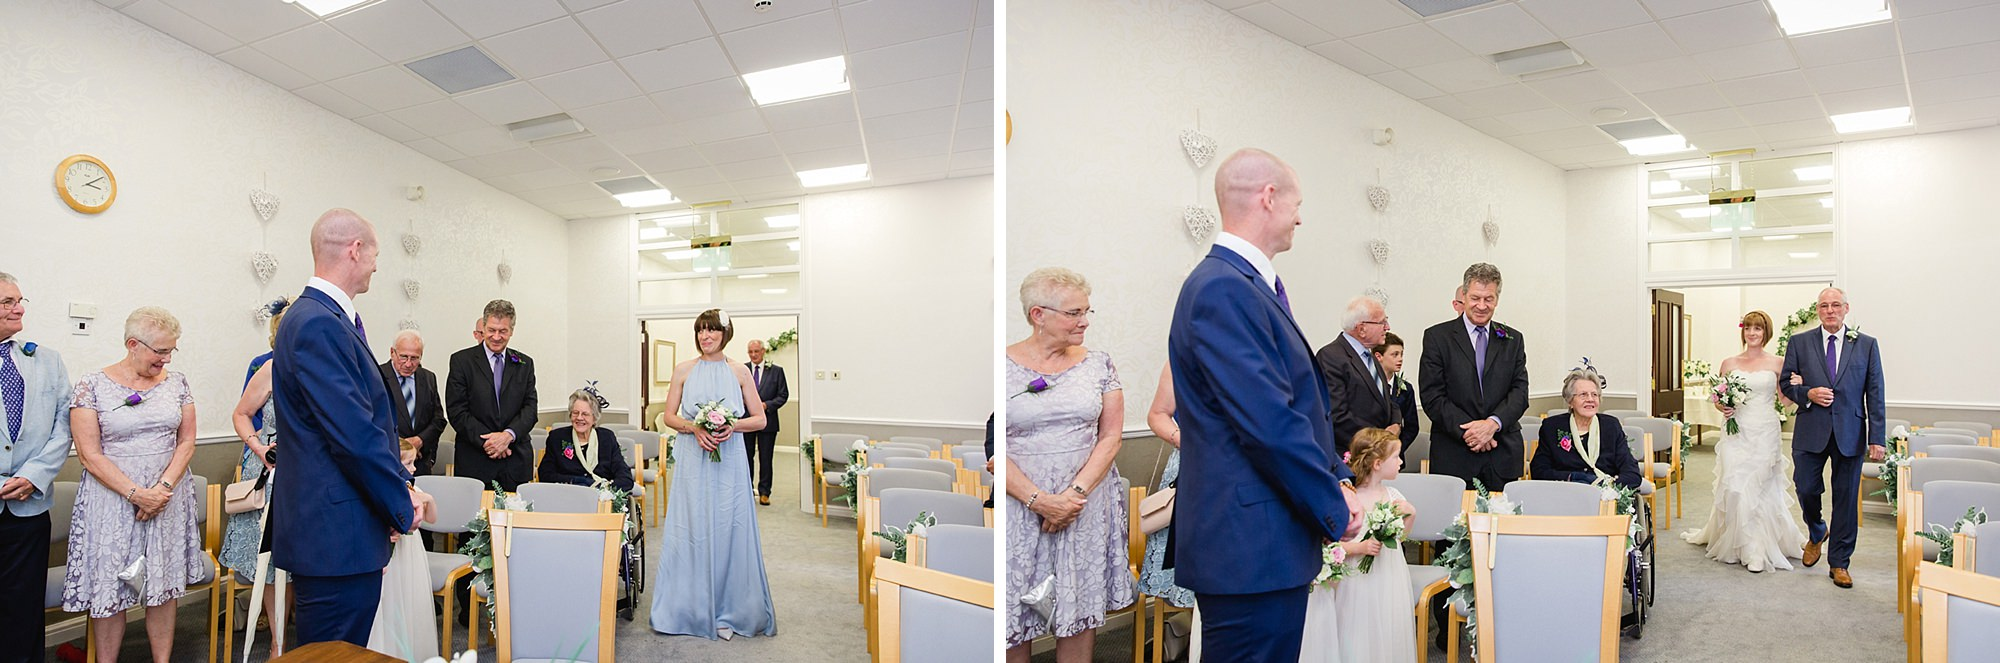 Mill House hotel wedding photography